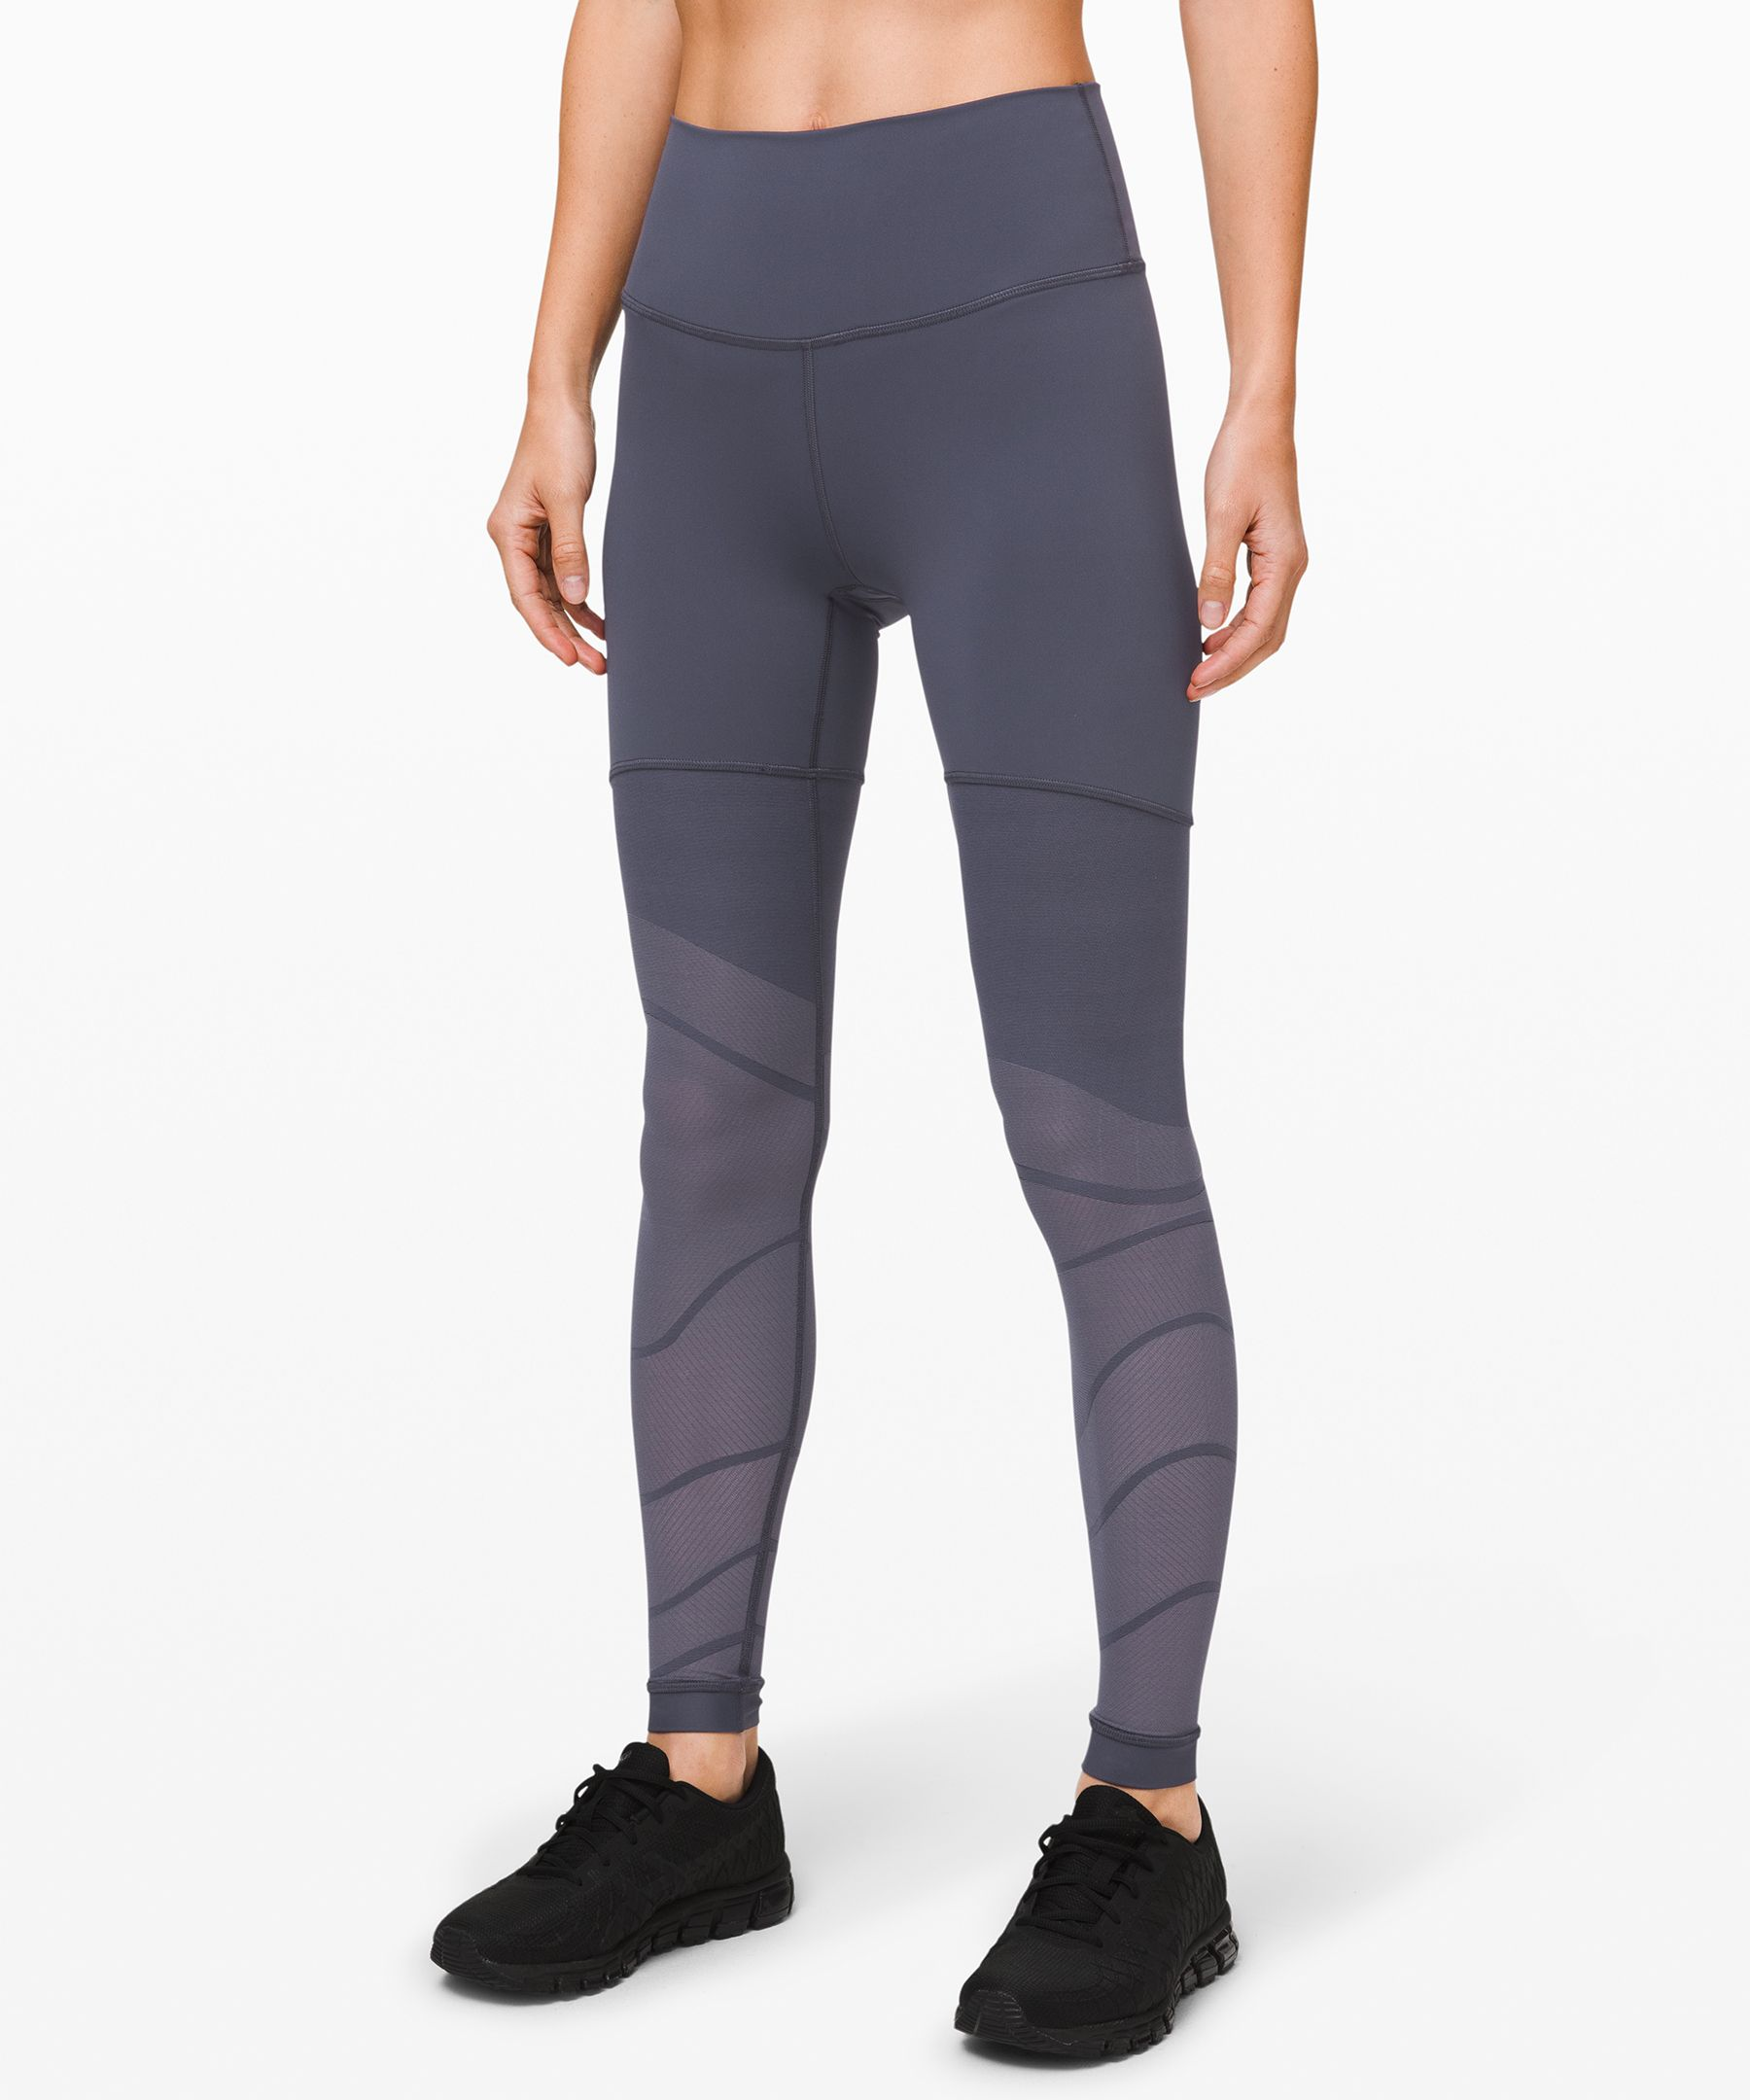 Sweat hard and breathe easy in  these Naked Sensation tights  made with smooth technical  fabric and engineered  ventilation with a gradient  effect to help keep you cool  when your workout heats up.